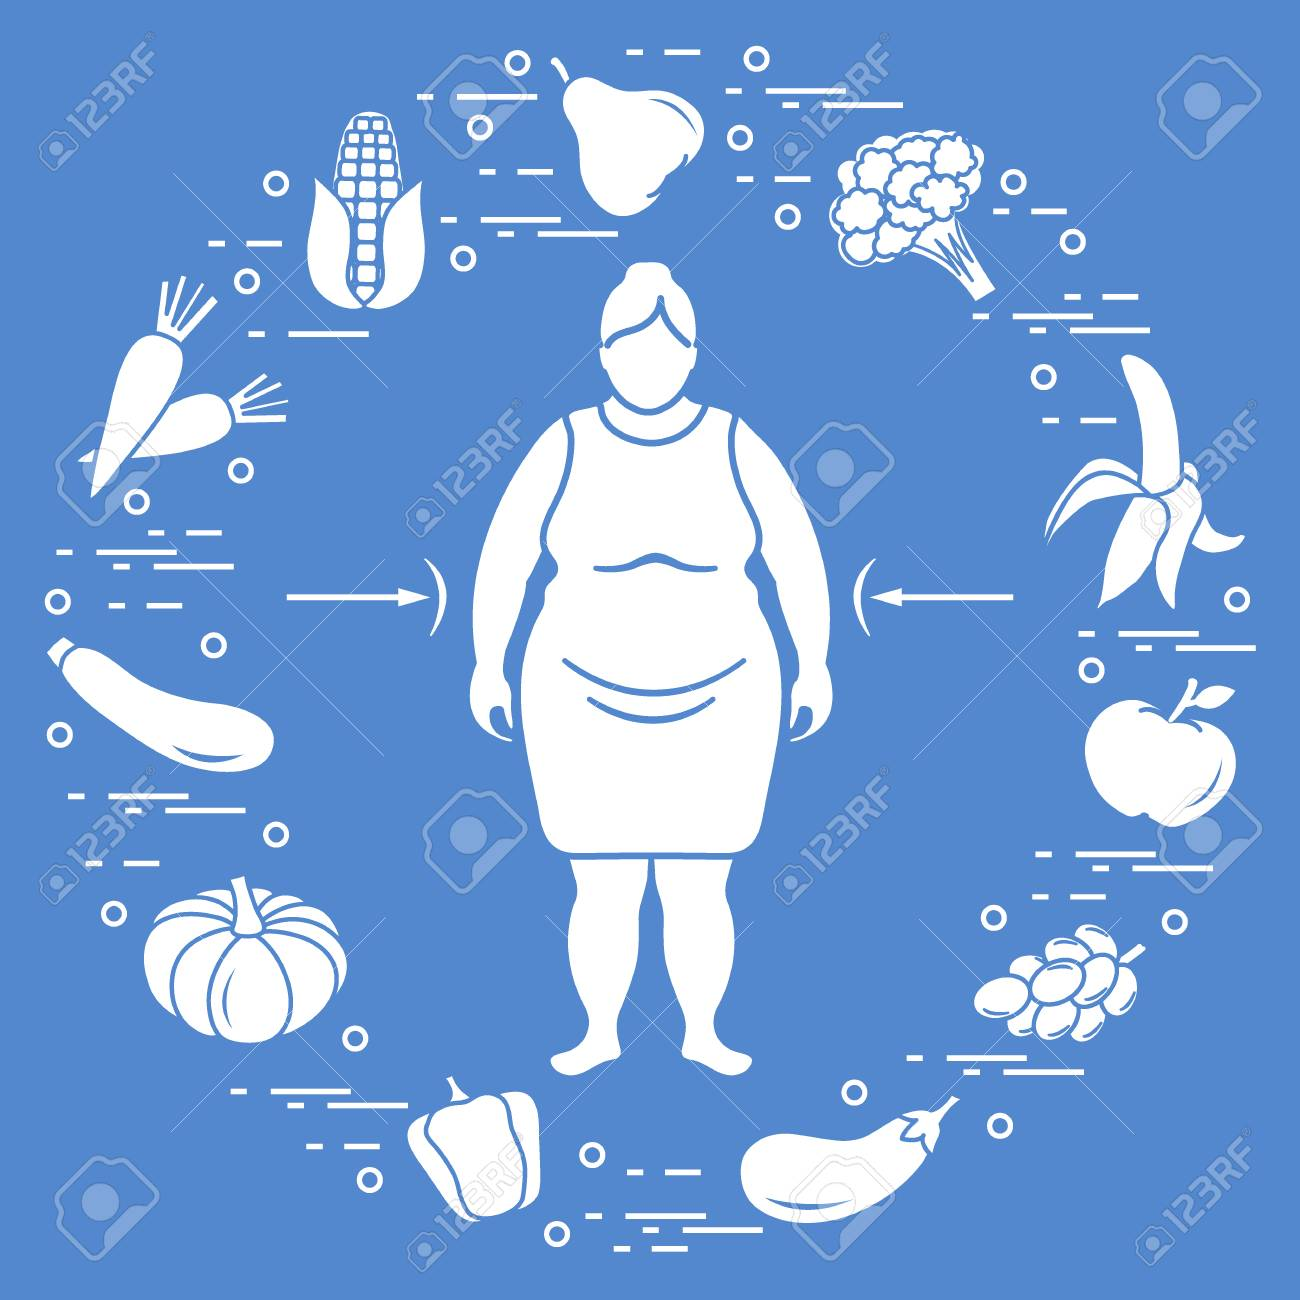 Fat woman with healthy food around her. Healthy eating habits. Design for banner and print. - 92623453